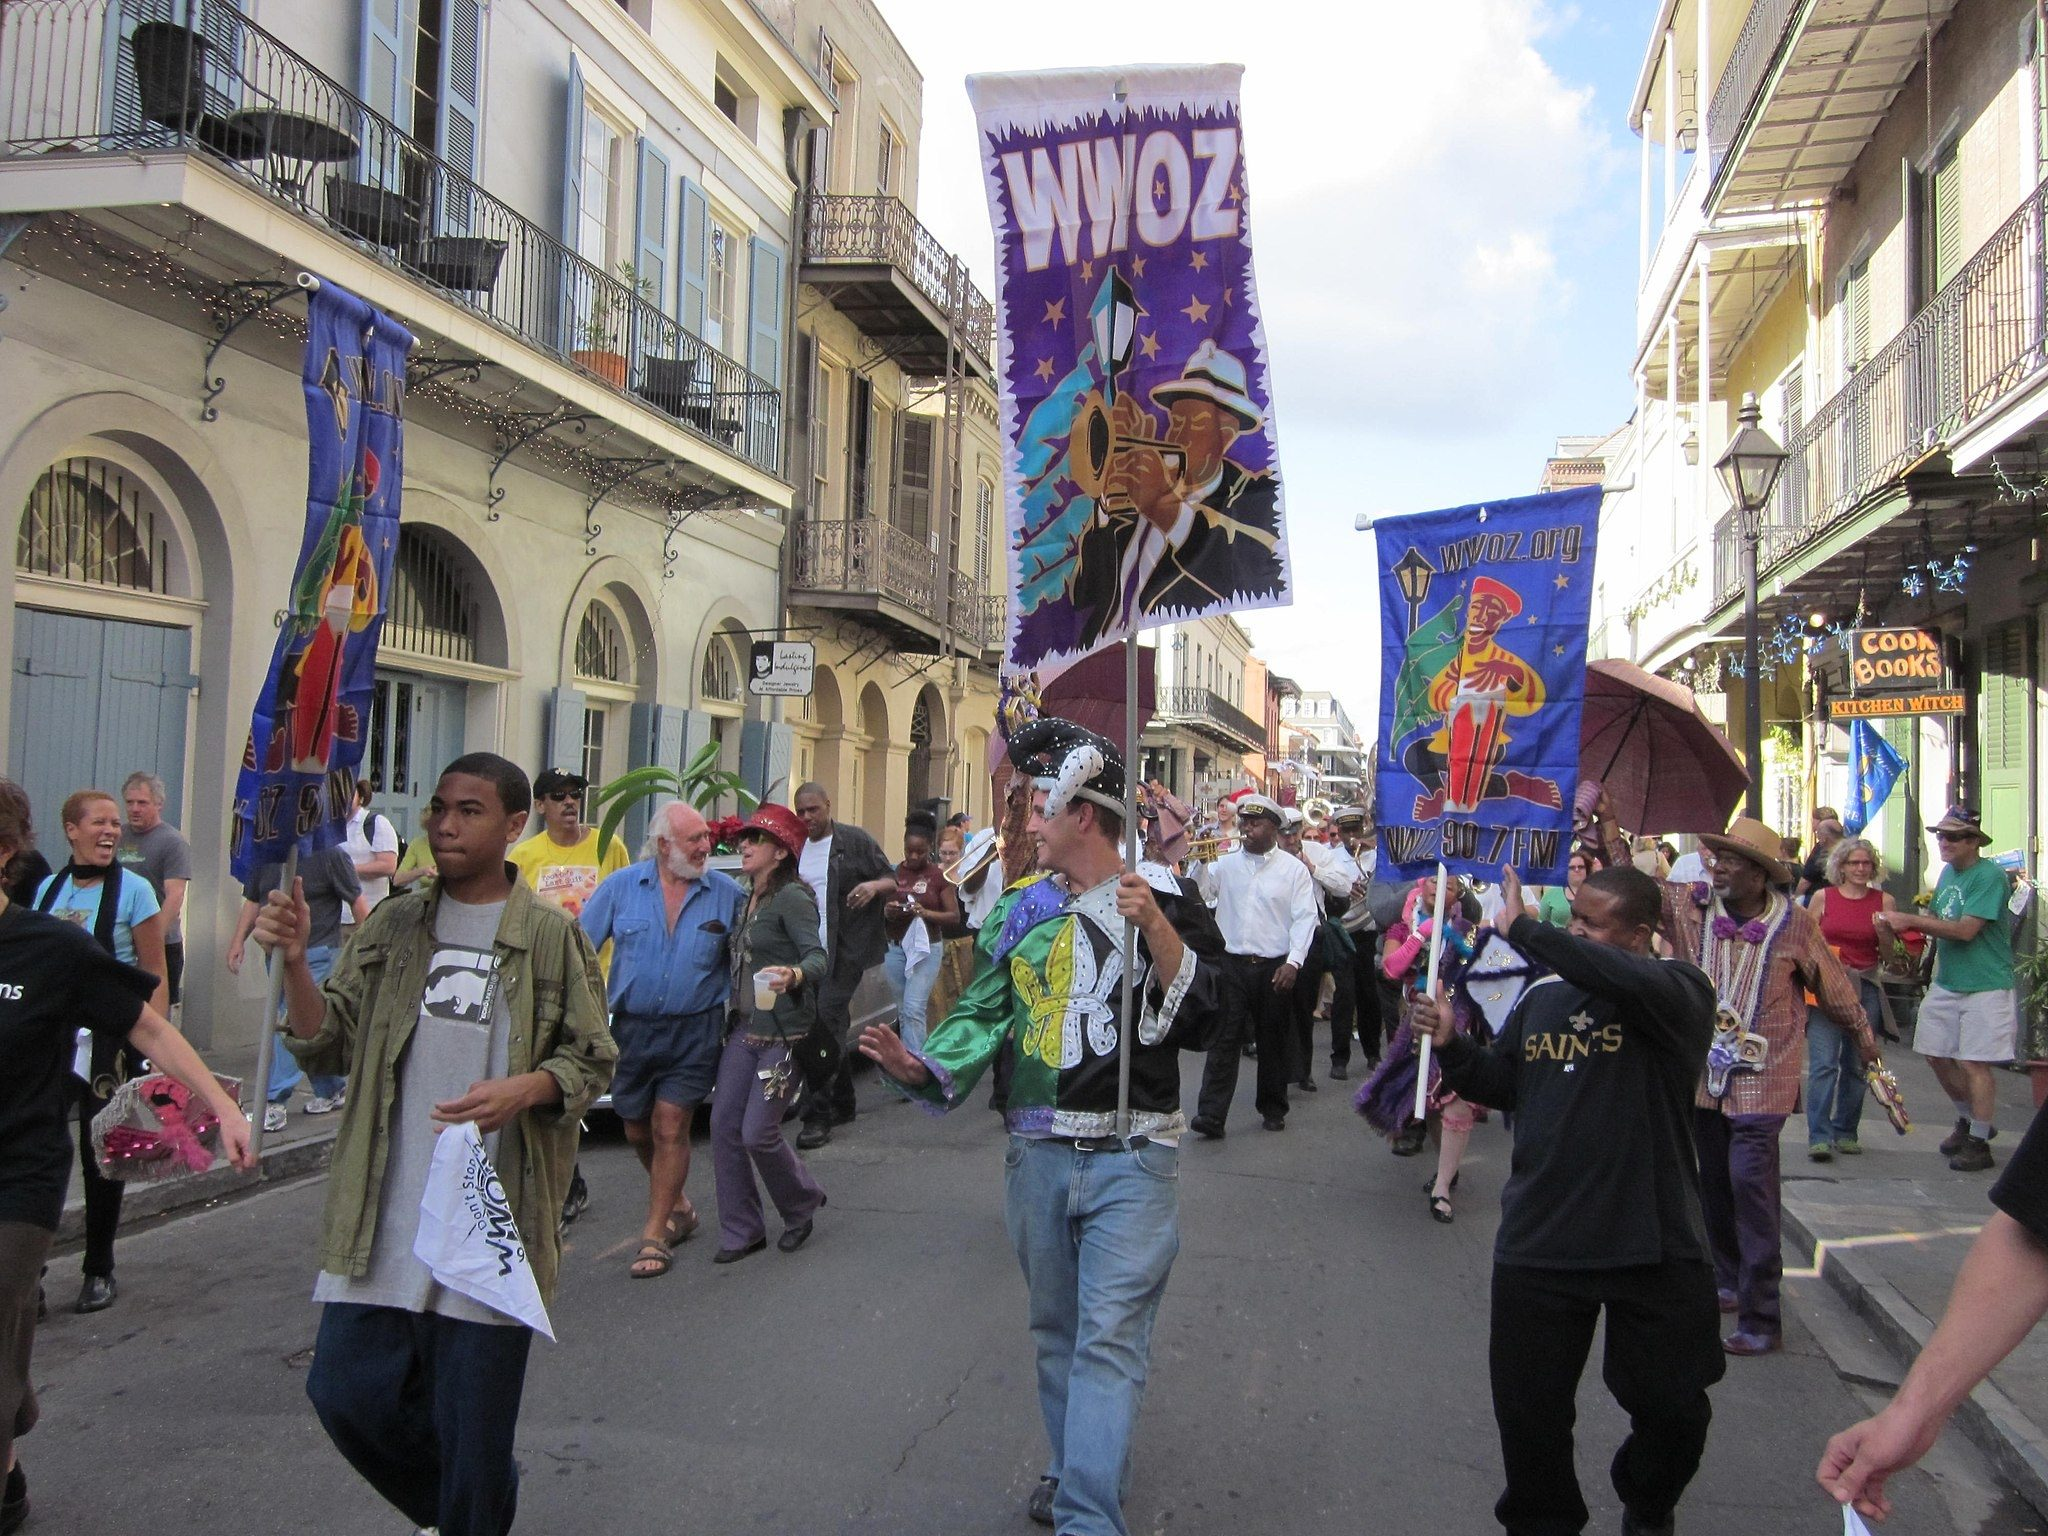 wwoz_30th_birthday_parade_banners_cook_books-6907945